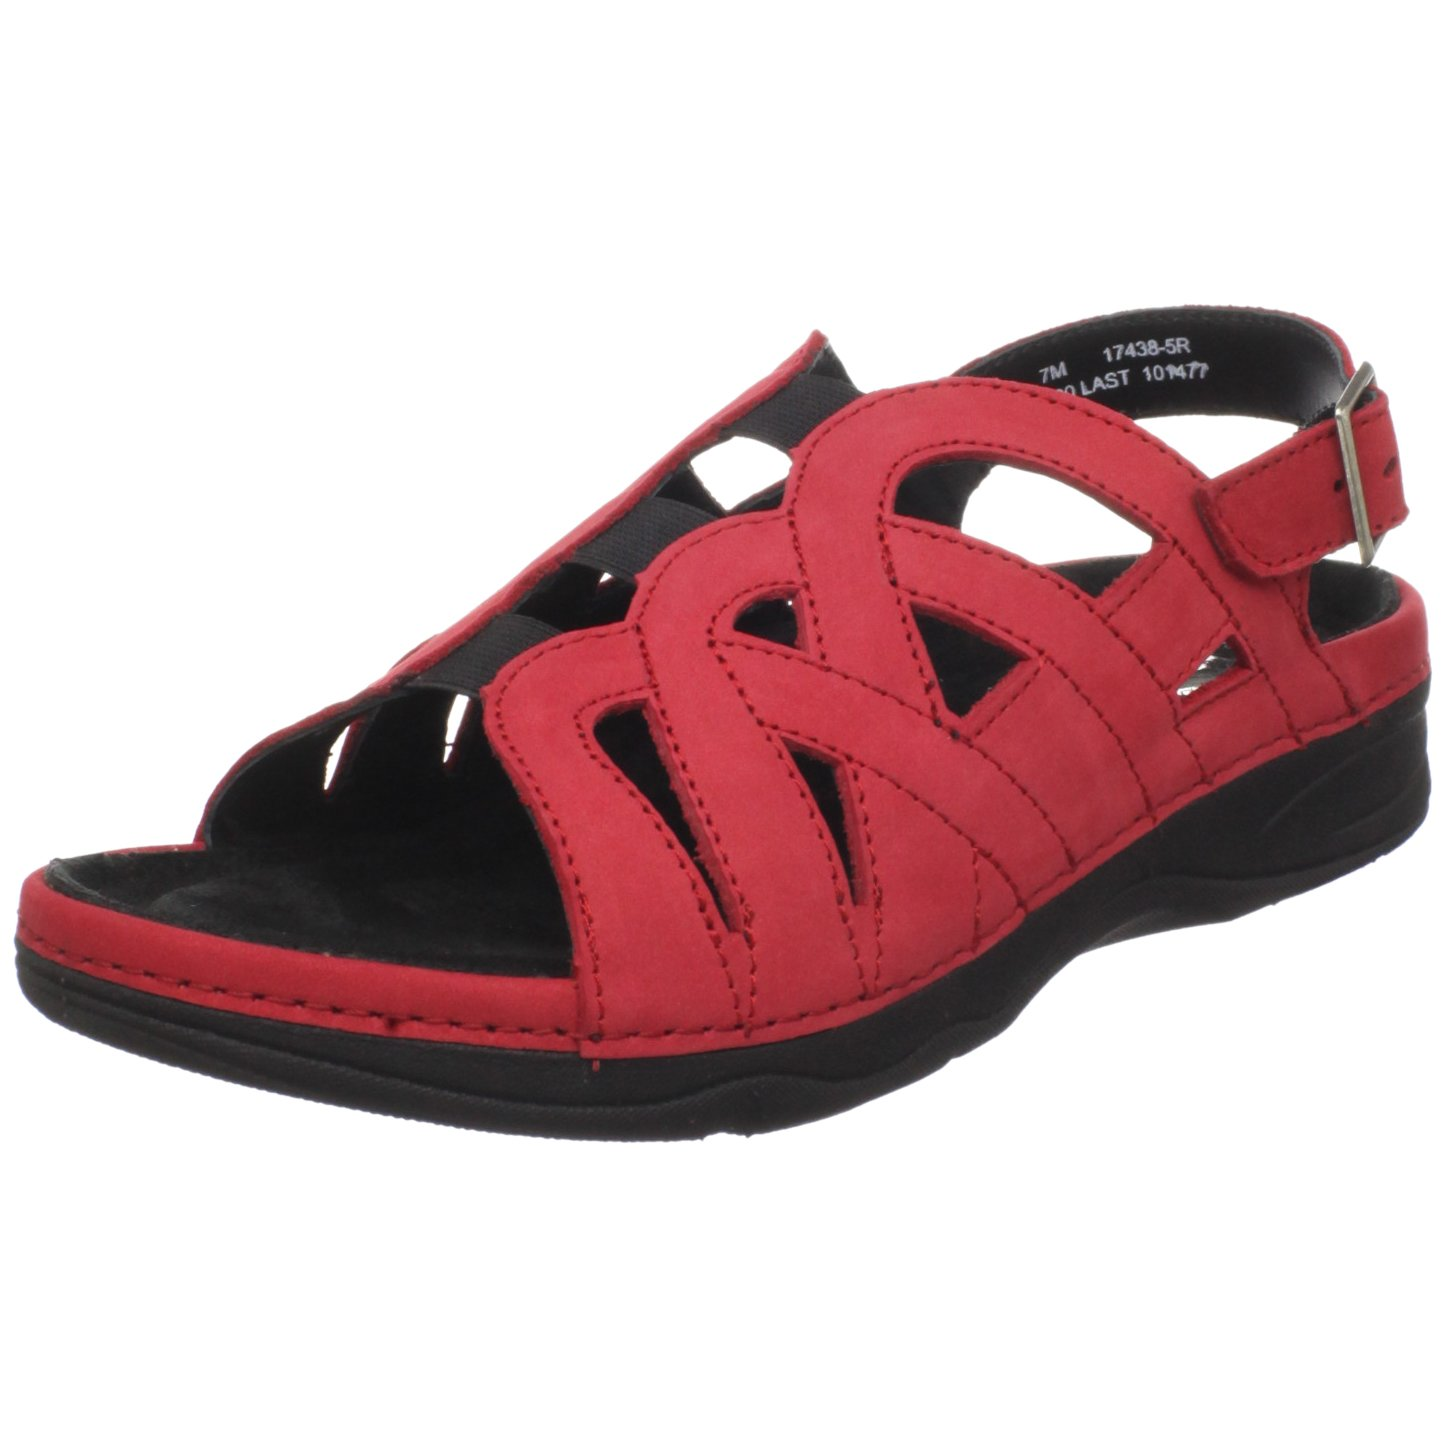 Drew Shoe Women's Sandy Sandal B003YUEZW2 12 B(M) US|Red Nubuck